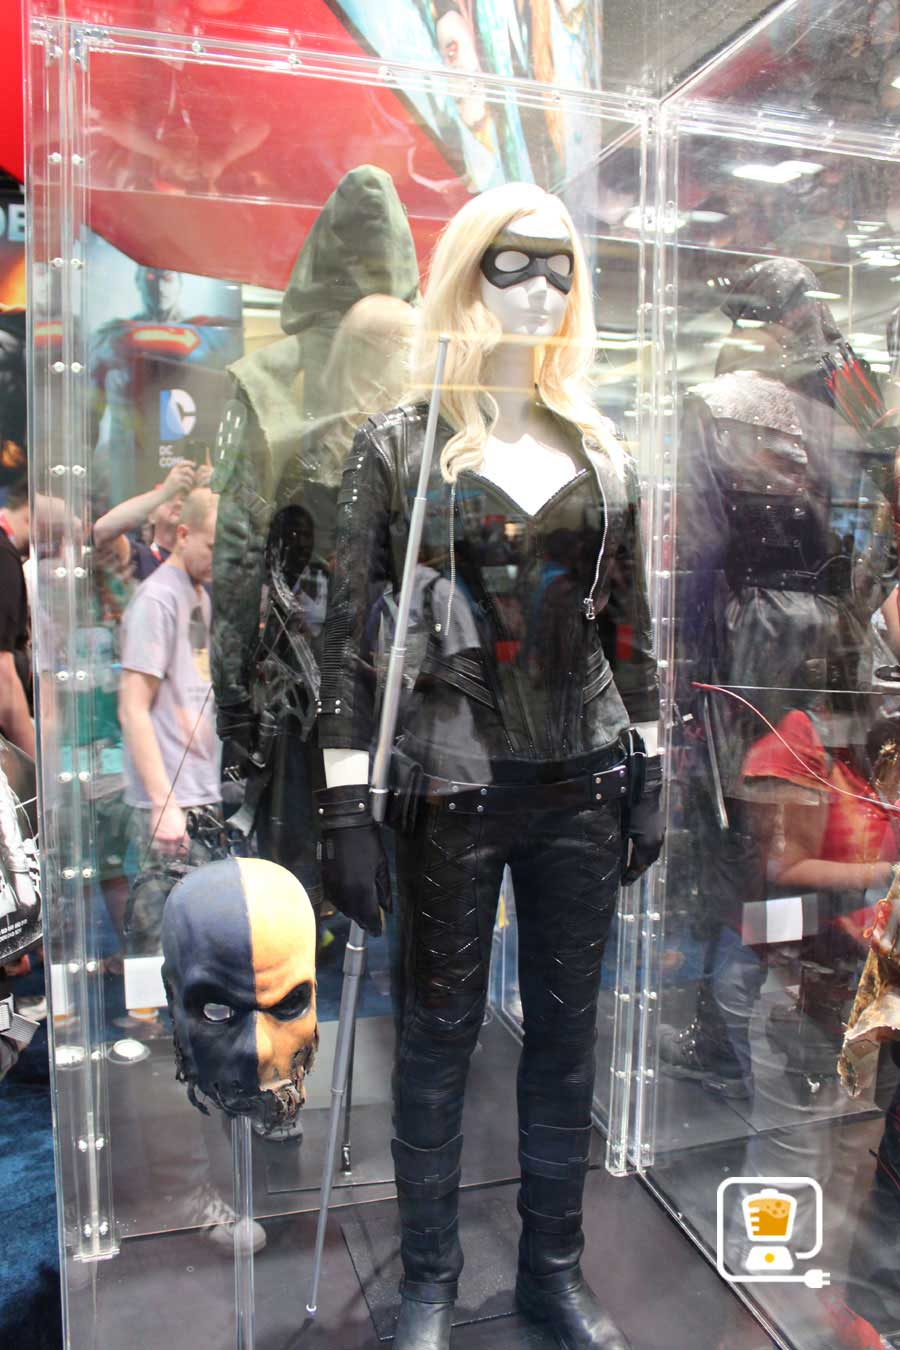 See Flash And Arrow's Amazing Costumes And Gadgets On Display At Comic-Con #32886